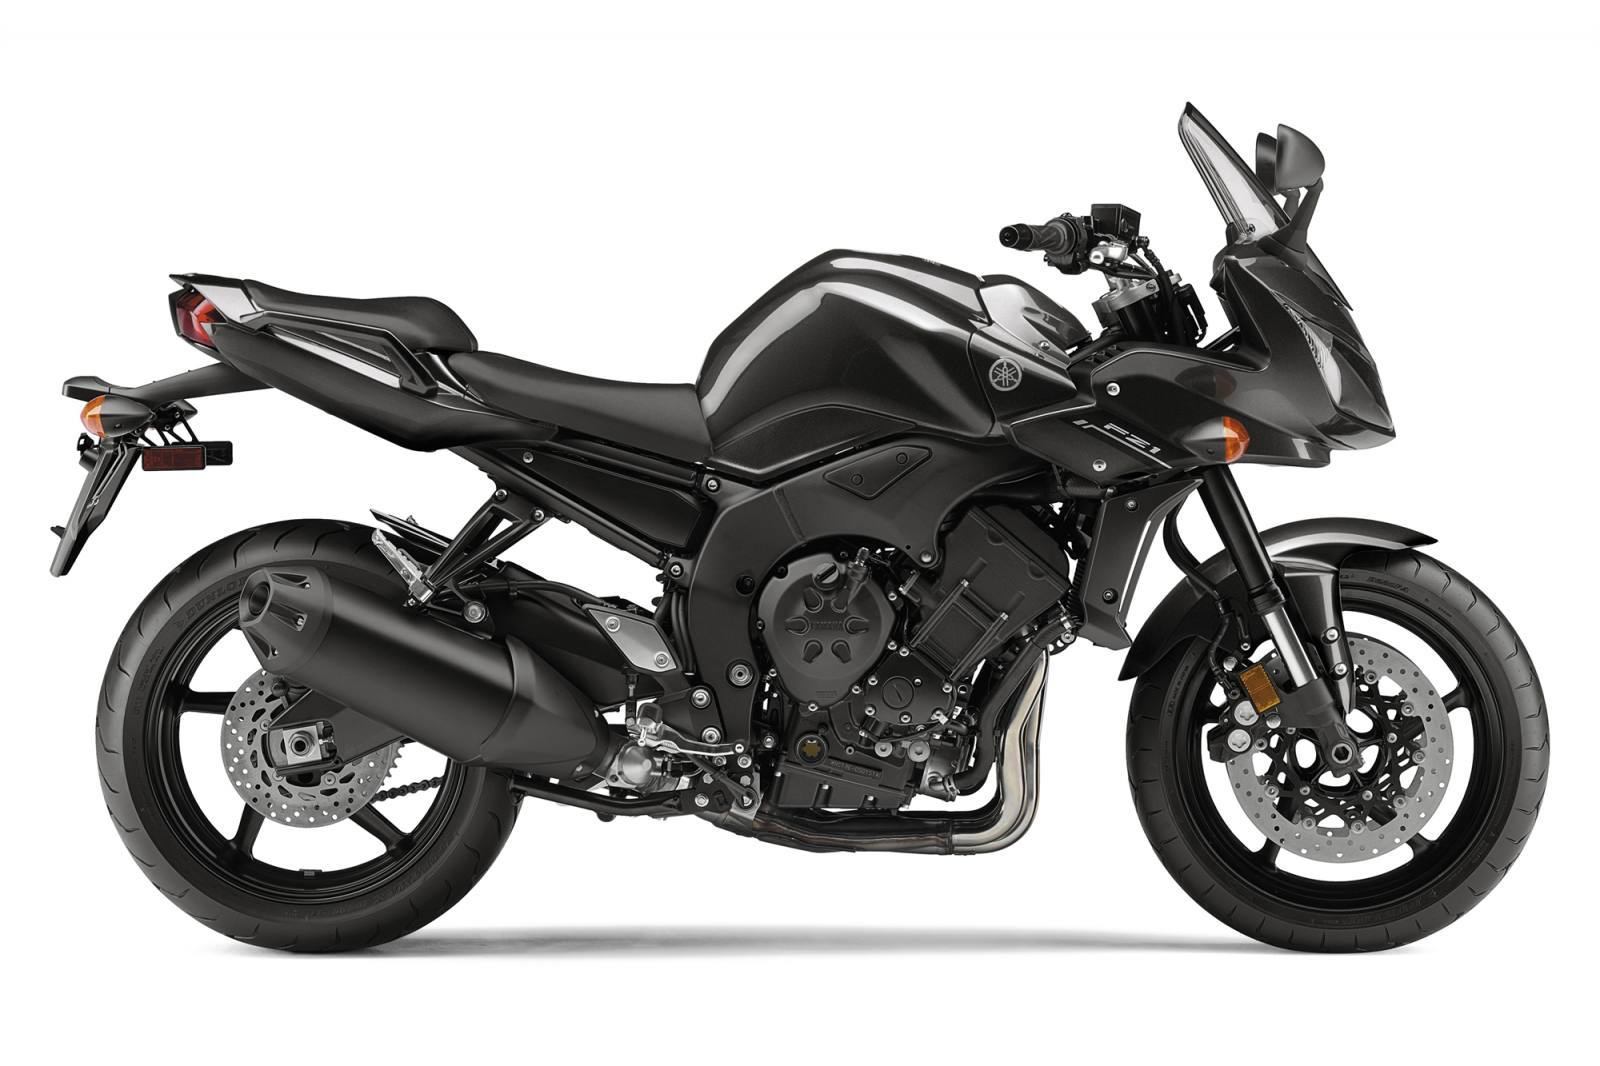 Yamaha Fz1 SPORT TOURING Motorcycles for sale